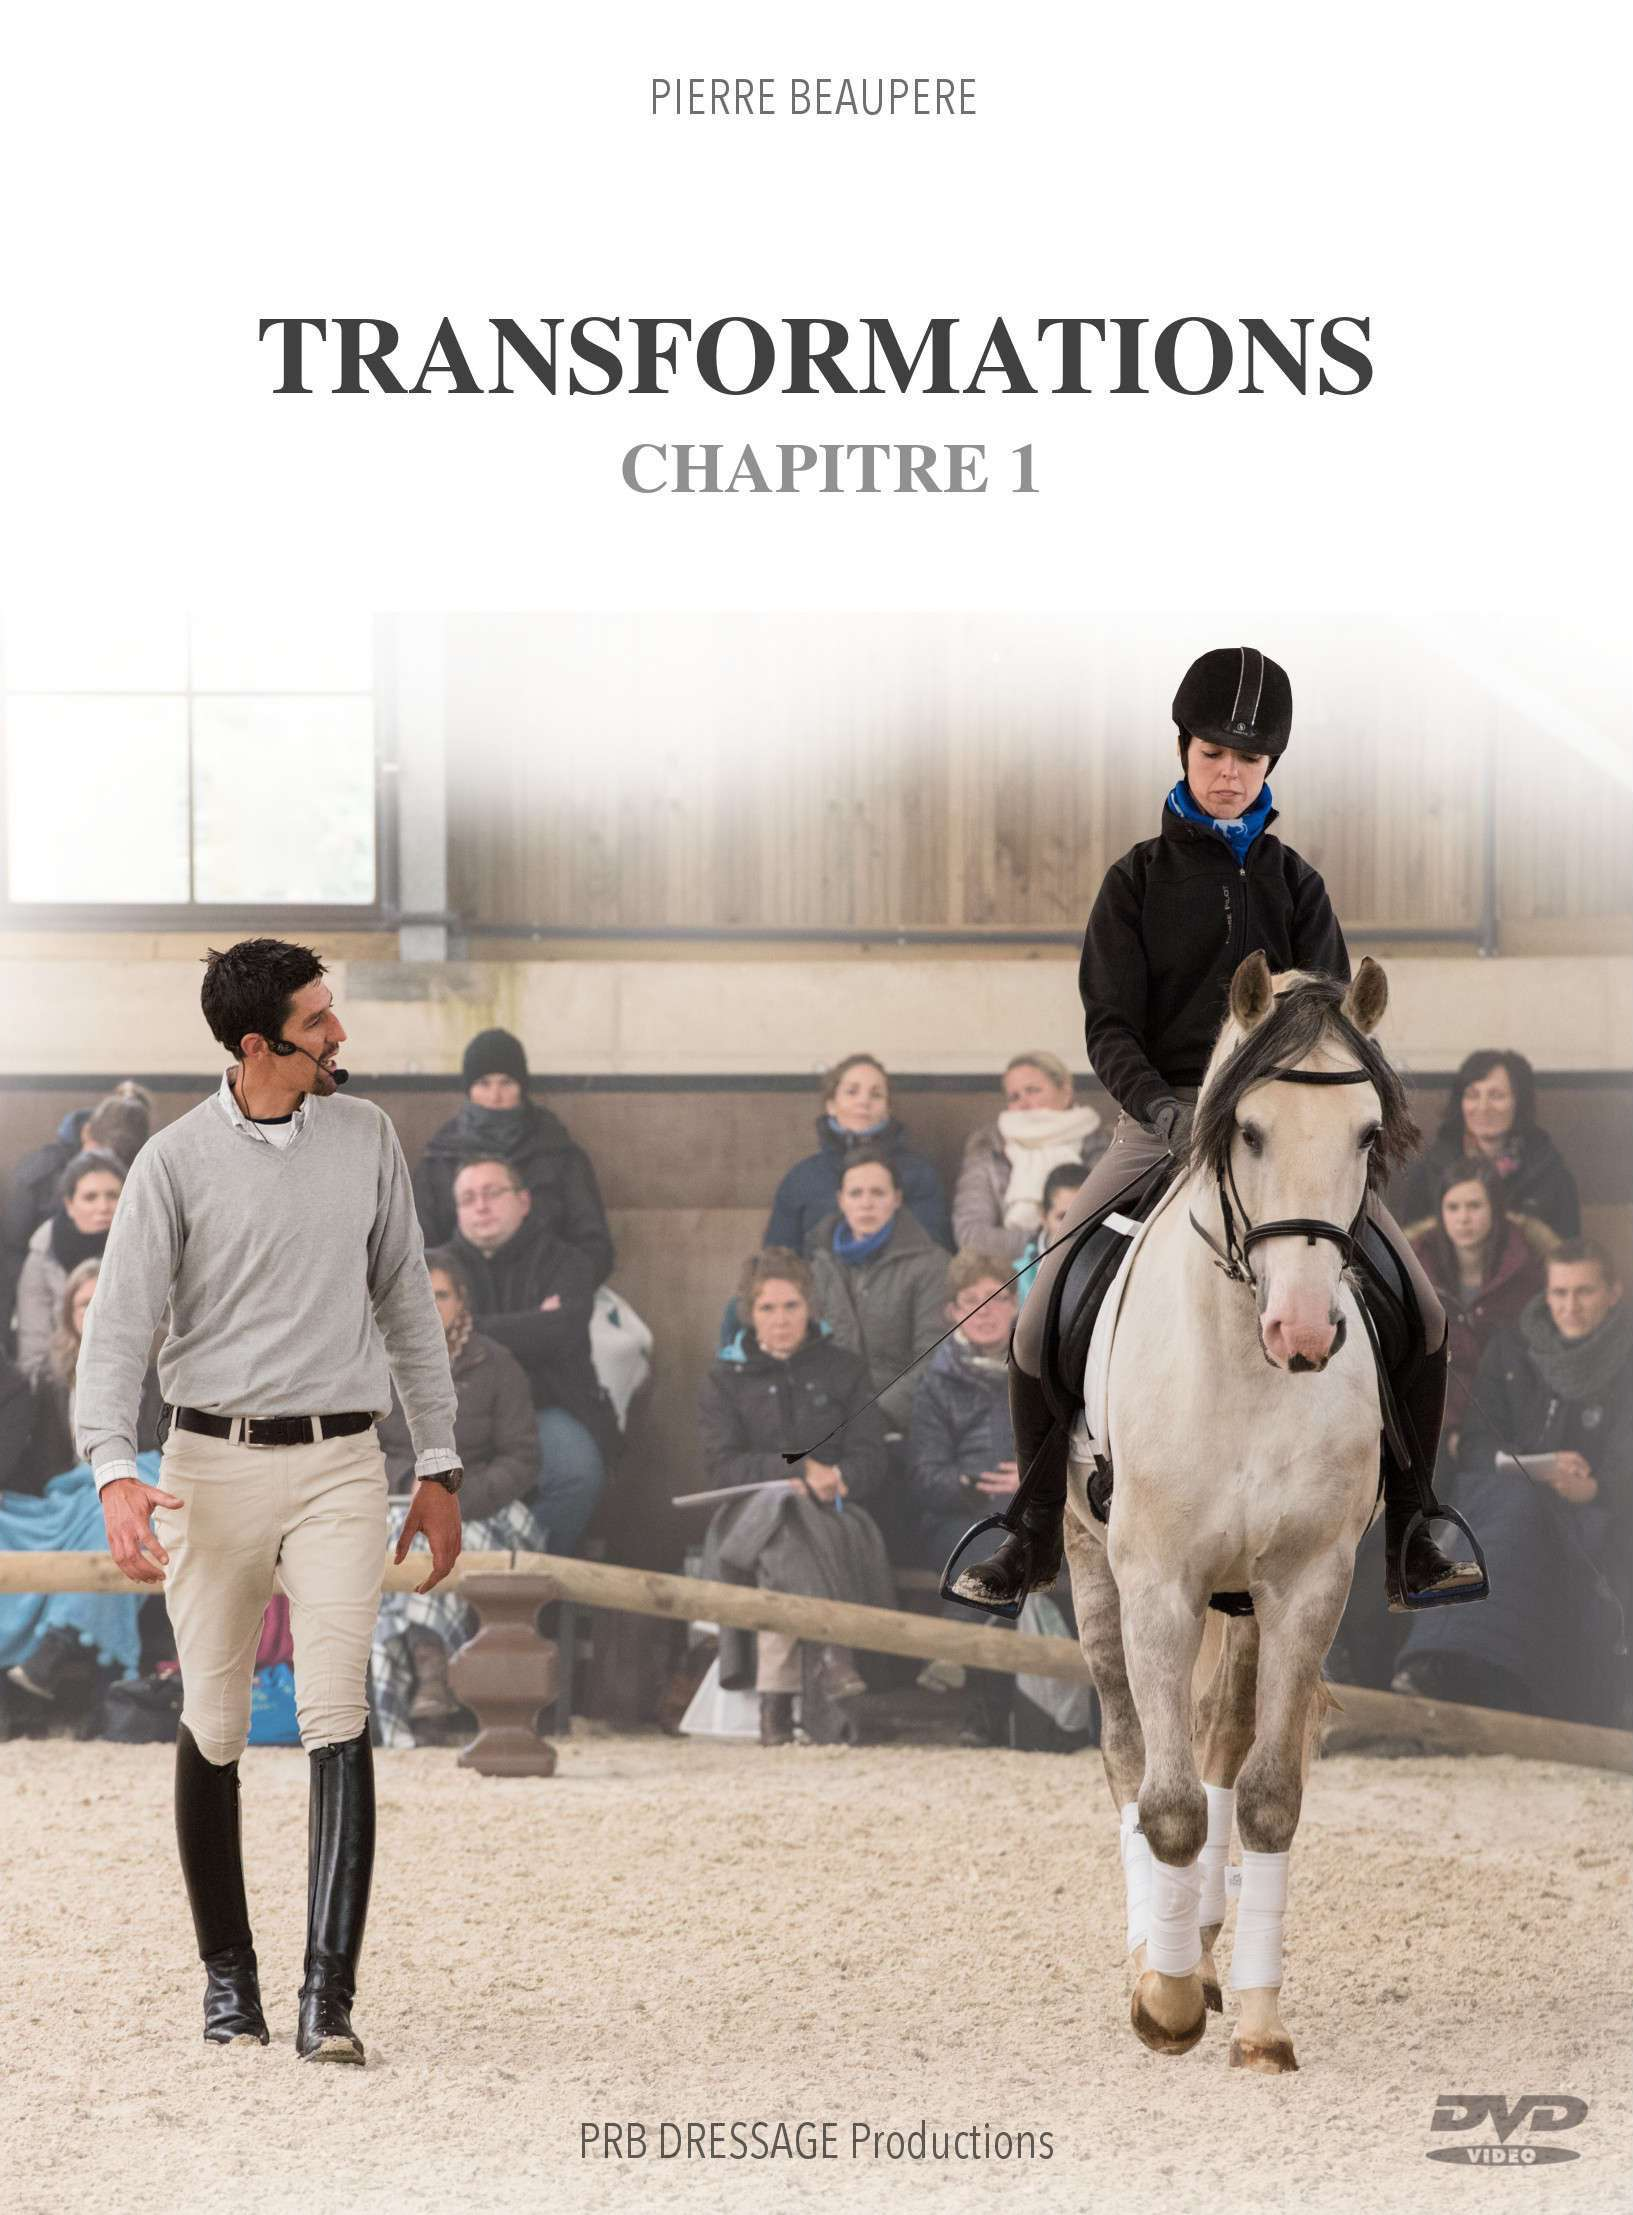 COFFRET DVDs : TRANSFORMATIONS - 363 minutes